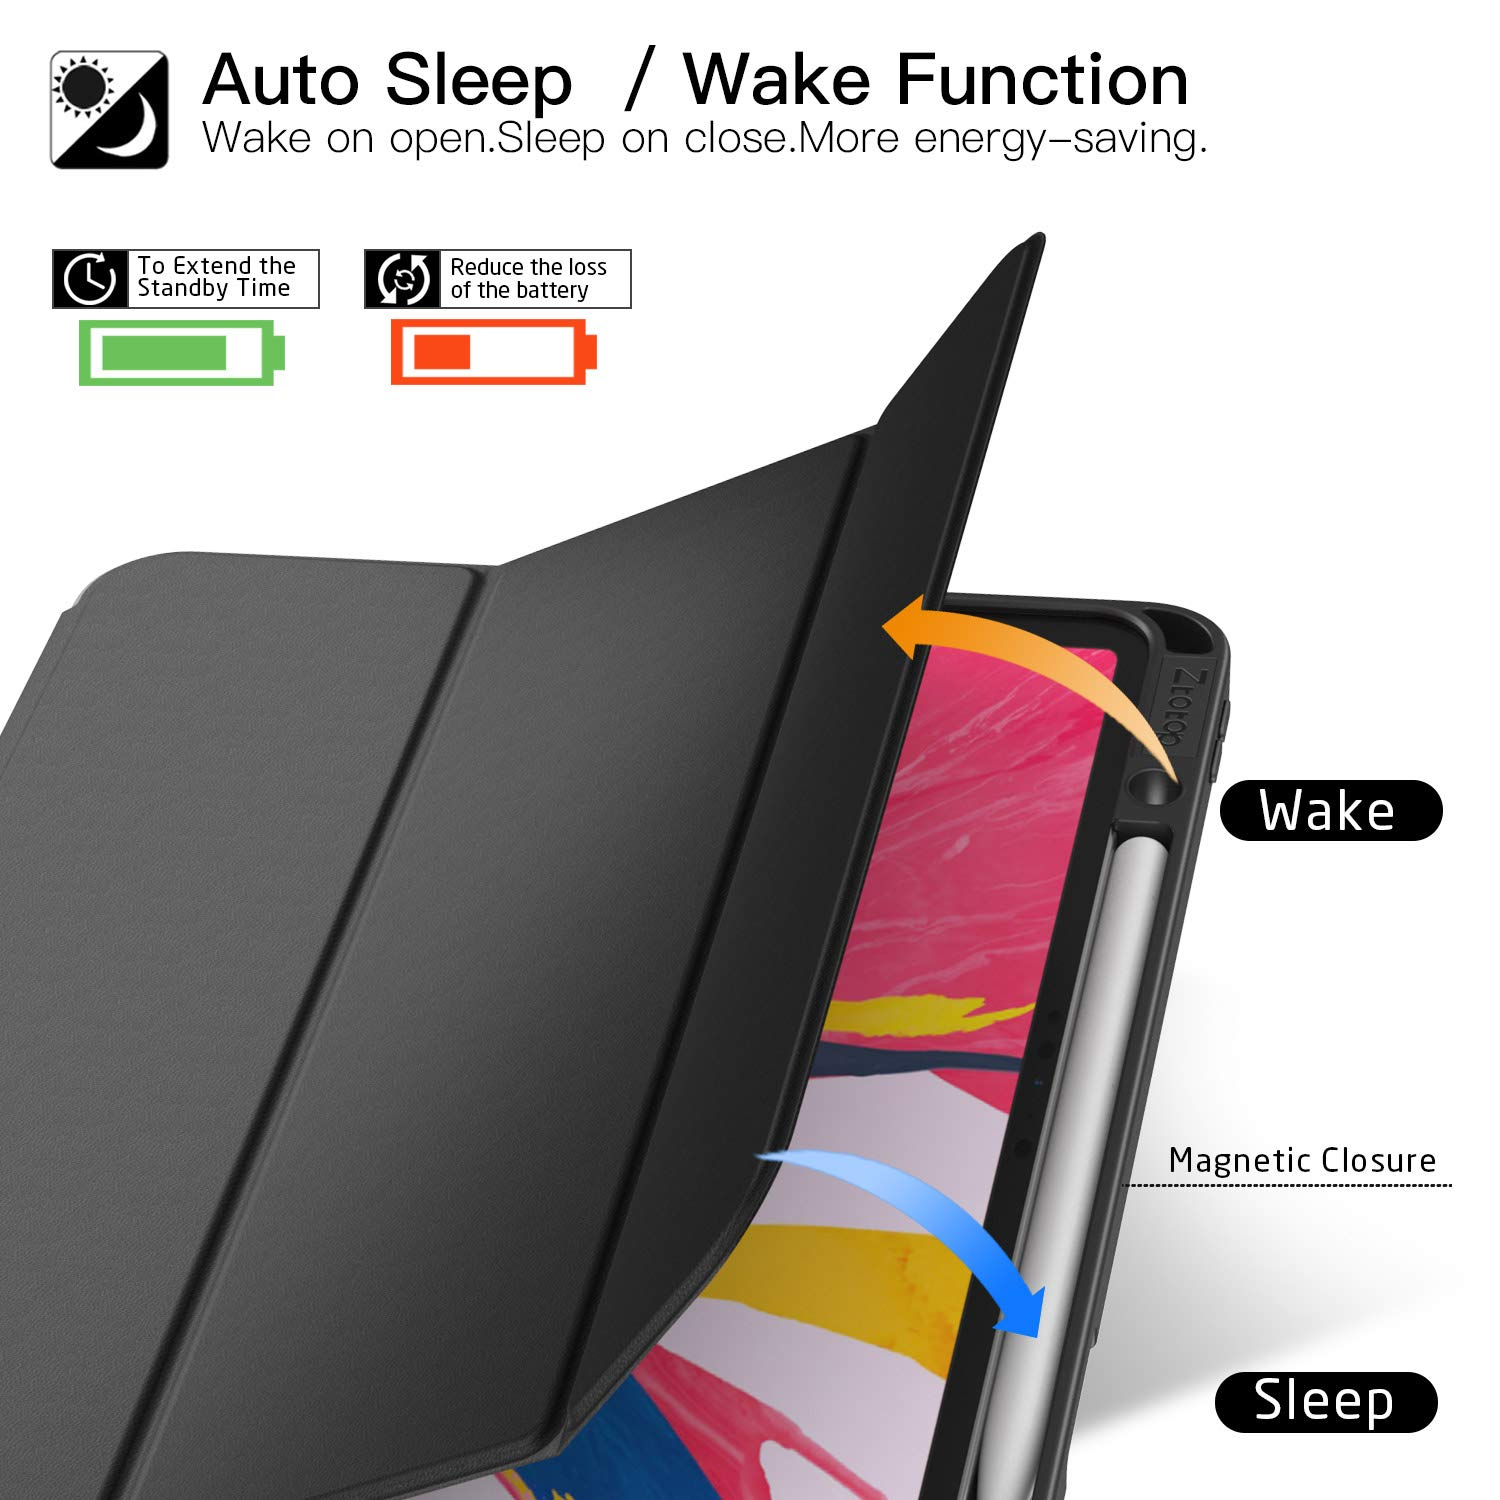 Ztotop Case for iPad Pro 12.9 Inch 2018, Full Body Protective Rugged Shockproof Case with iPad Pencil Holder, Auto Sleep/Wake, Support iPad Pencil Charging for iPad Pro 12.9 Inch 3rd Gen - Black by Ztotop (Image #3)